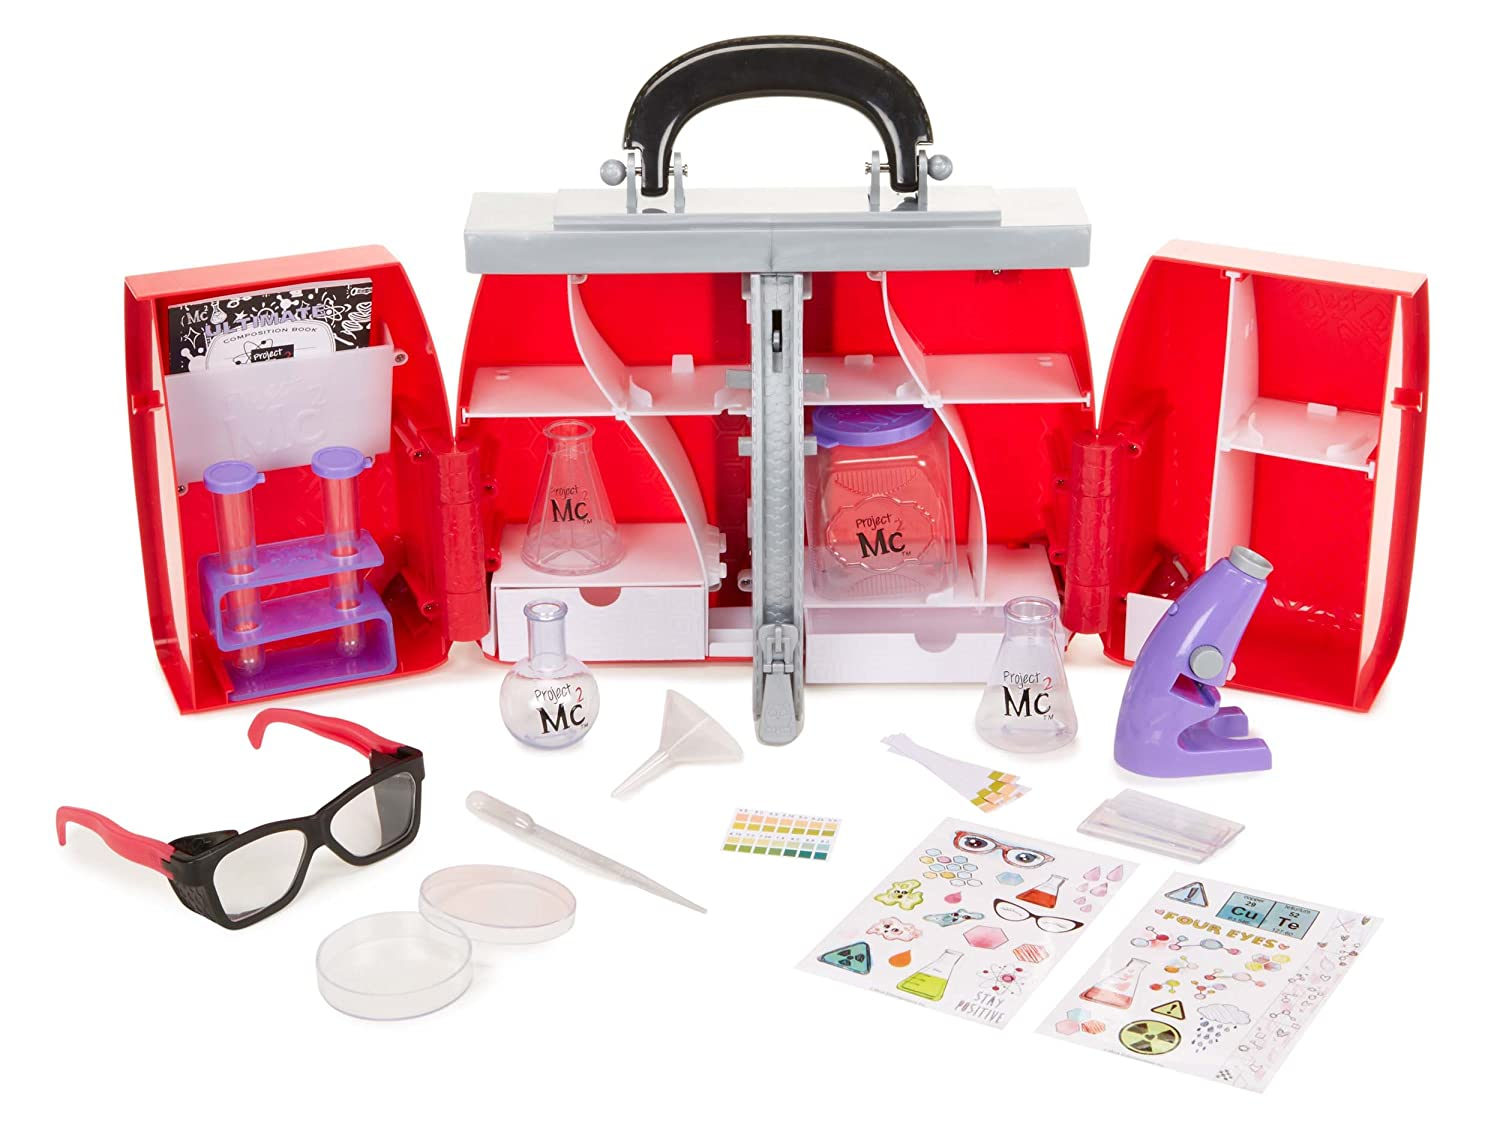 Amazon.com: Project Mc2 Ultimate Lab Kit: Toys & Games